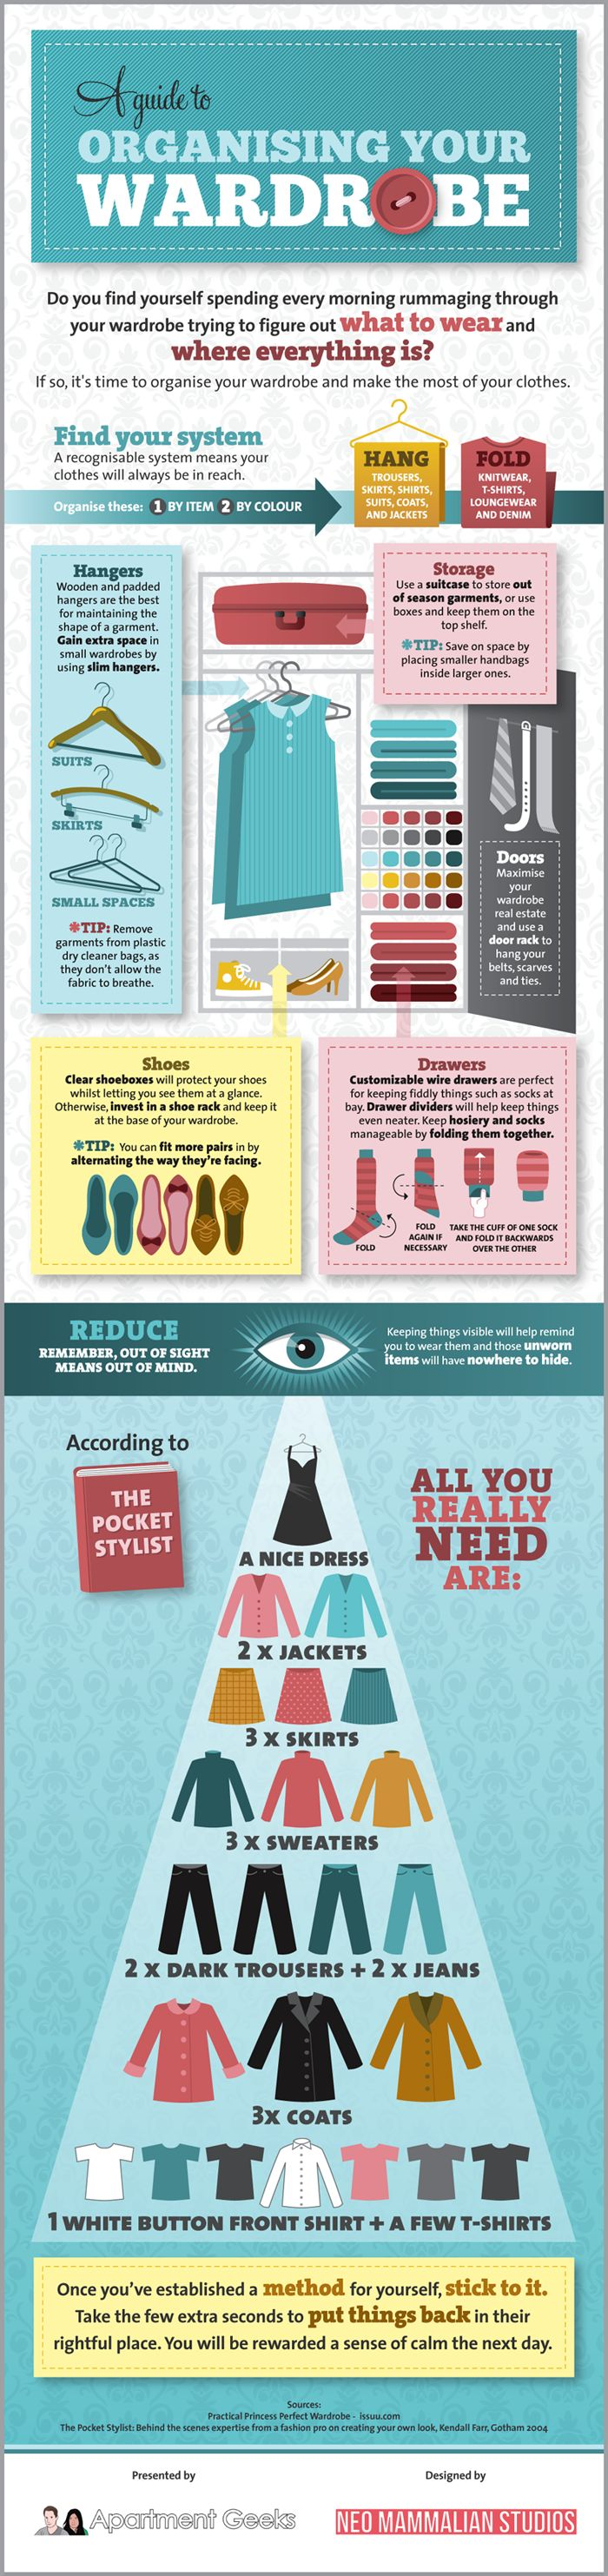 A guide to organizing your wardrobe [Infographic]...I love to have an organized closet...and it is very important to me to know & have easy access to every item I own...I would really like to pare down what I do have though to mimic the very few items that at essentials on this list-- this is a must, I can't even fit all the clean clothes in the closet!